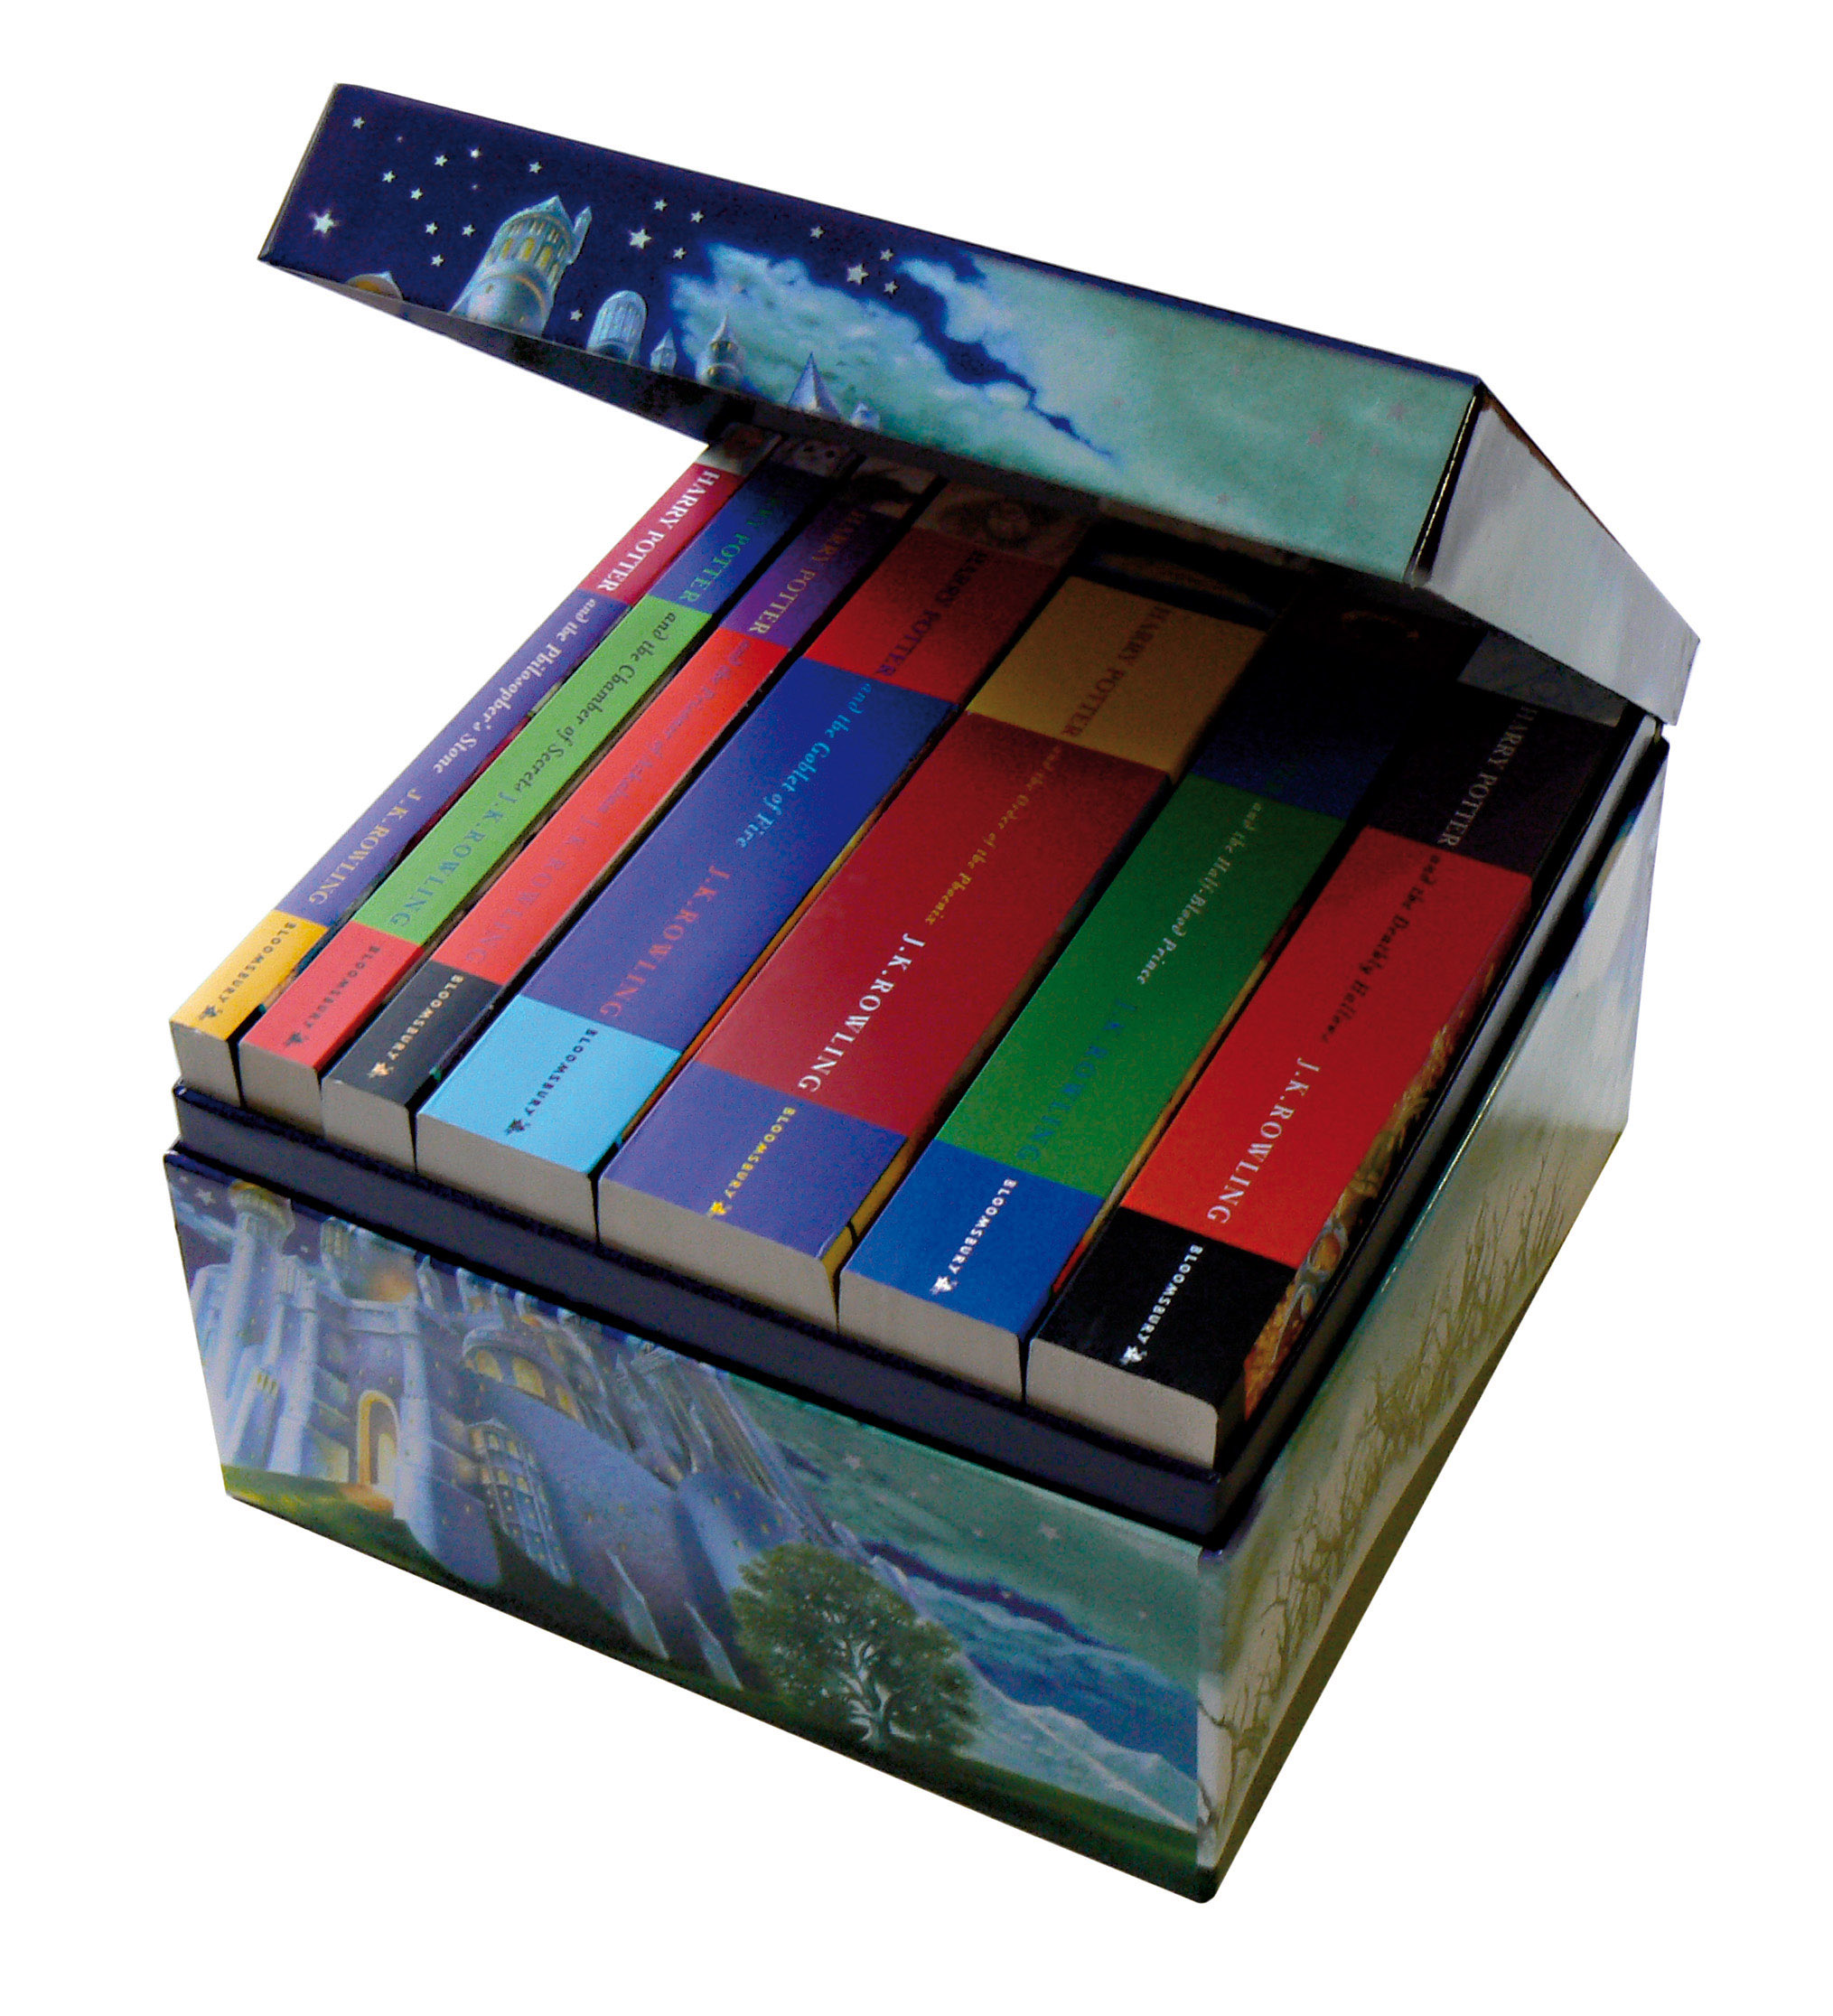 Harry Potter Paperback Boxed Set x 7 by J.K. Rowling, ISBN: 9780747595854